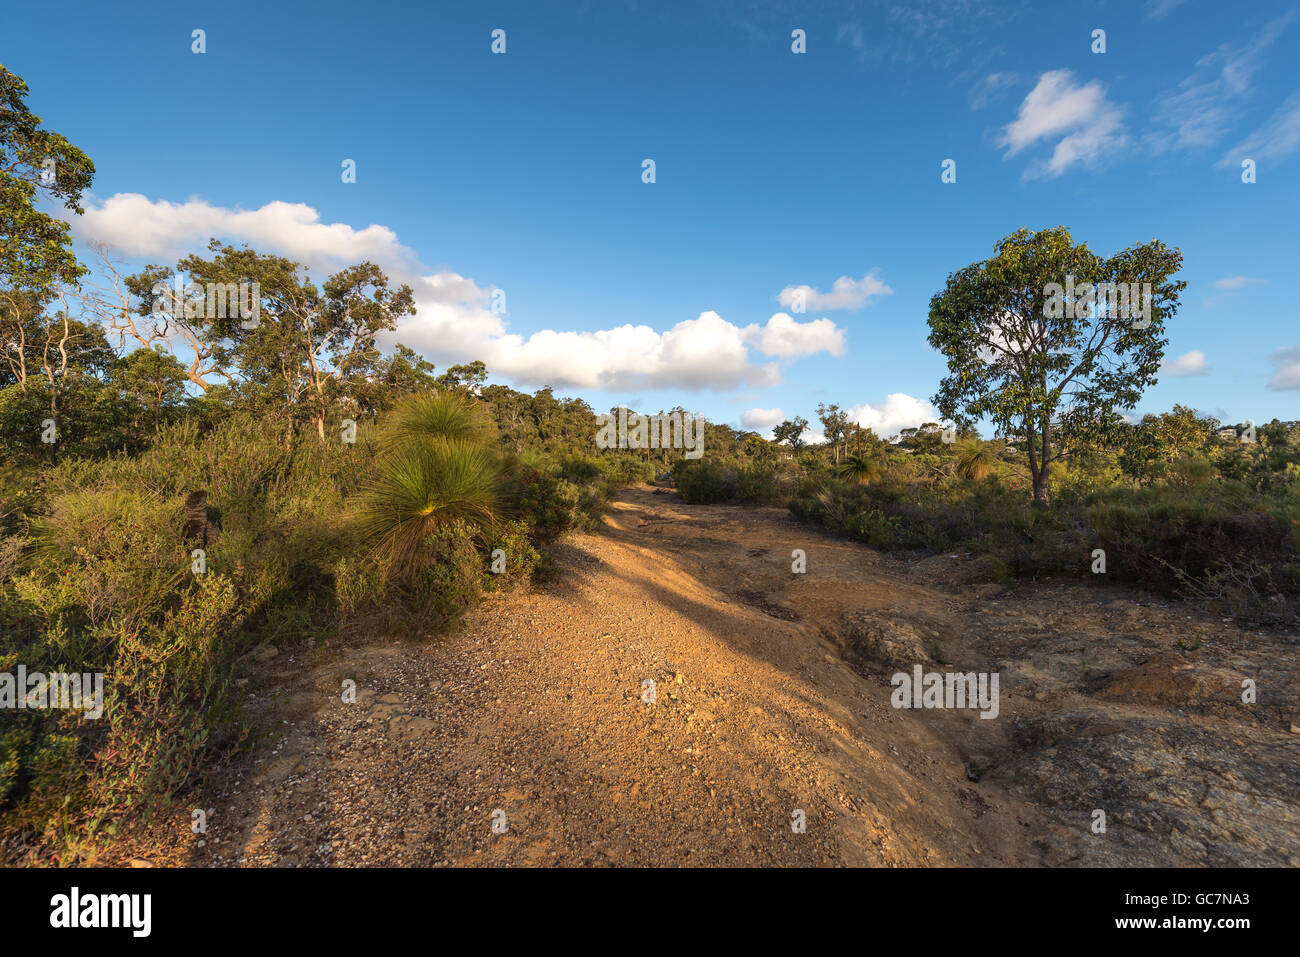 At  Kalamunda Zigzag Road  was part of the Upper Darling Range Railways line in Western Australia, opening  in July - Stock Image